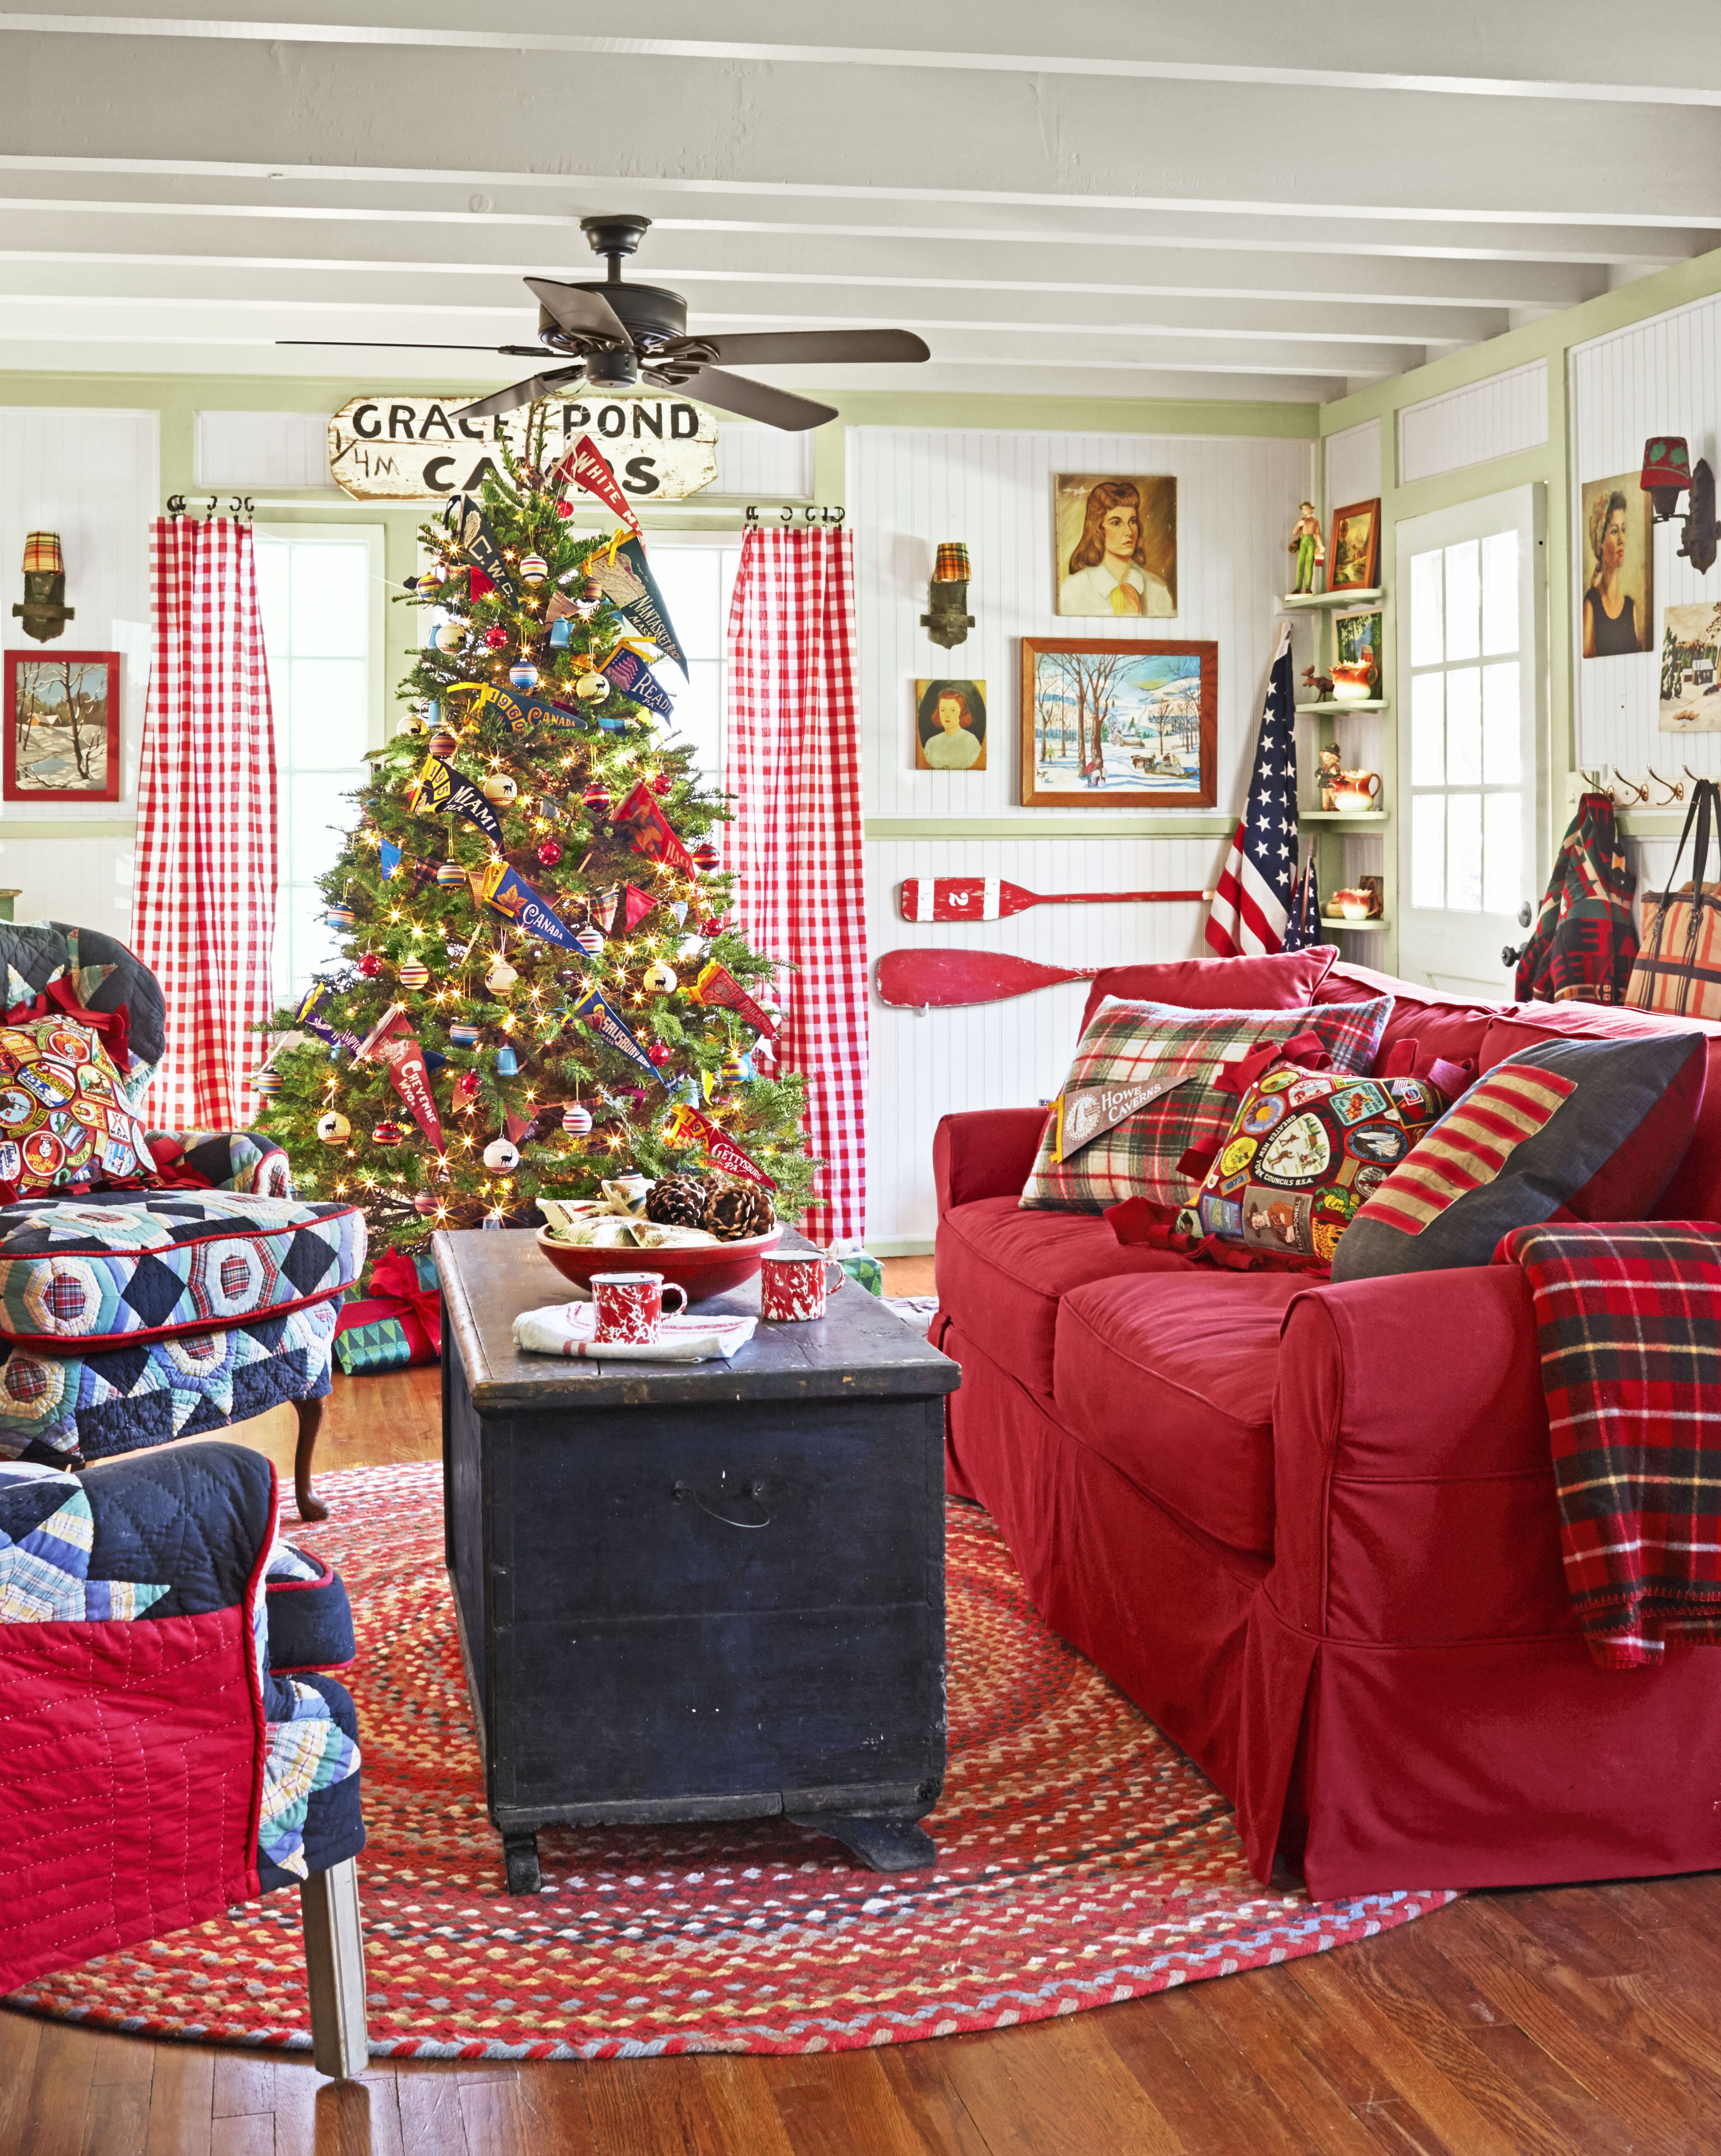 100 country christmas decorations holiday decorating ideas 2018 - How To Decorate A Small Living Room For Christmas